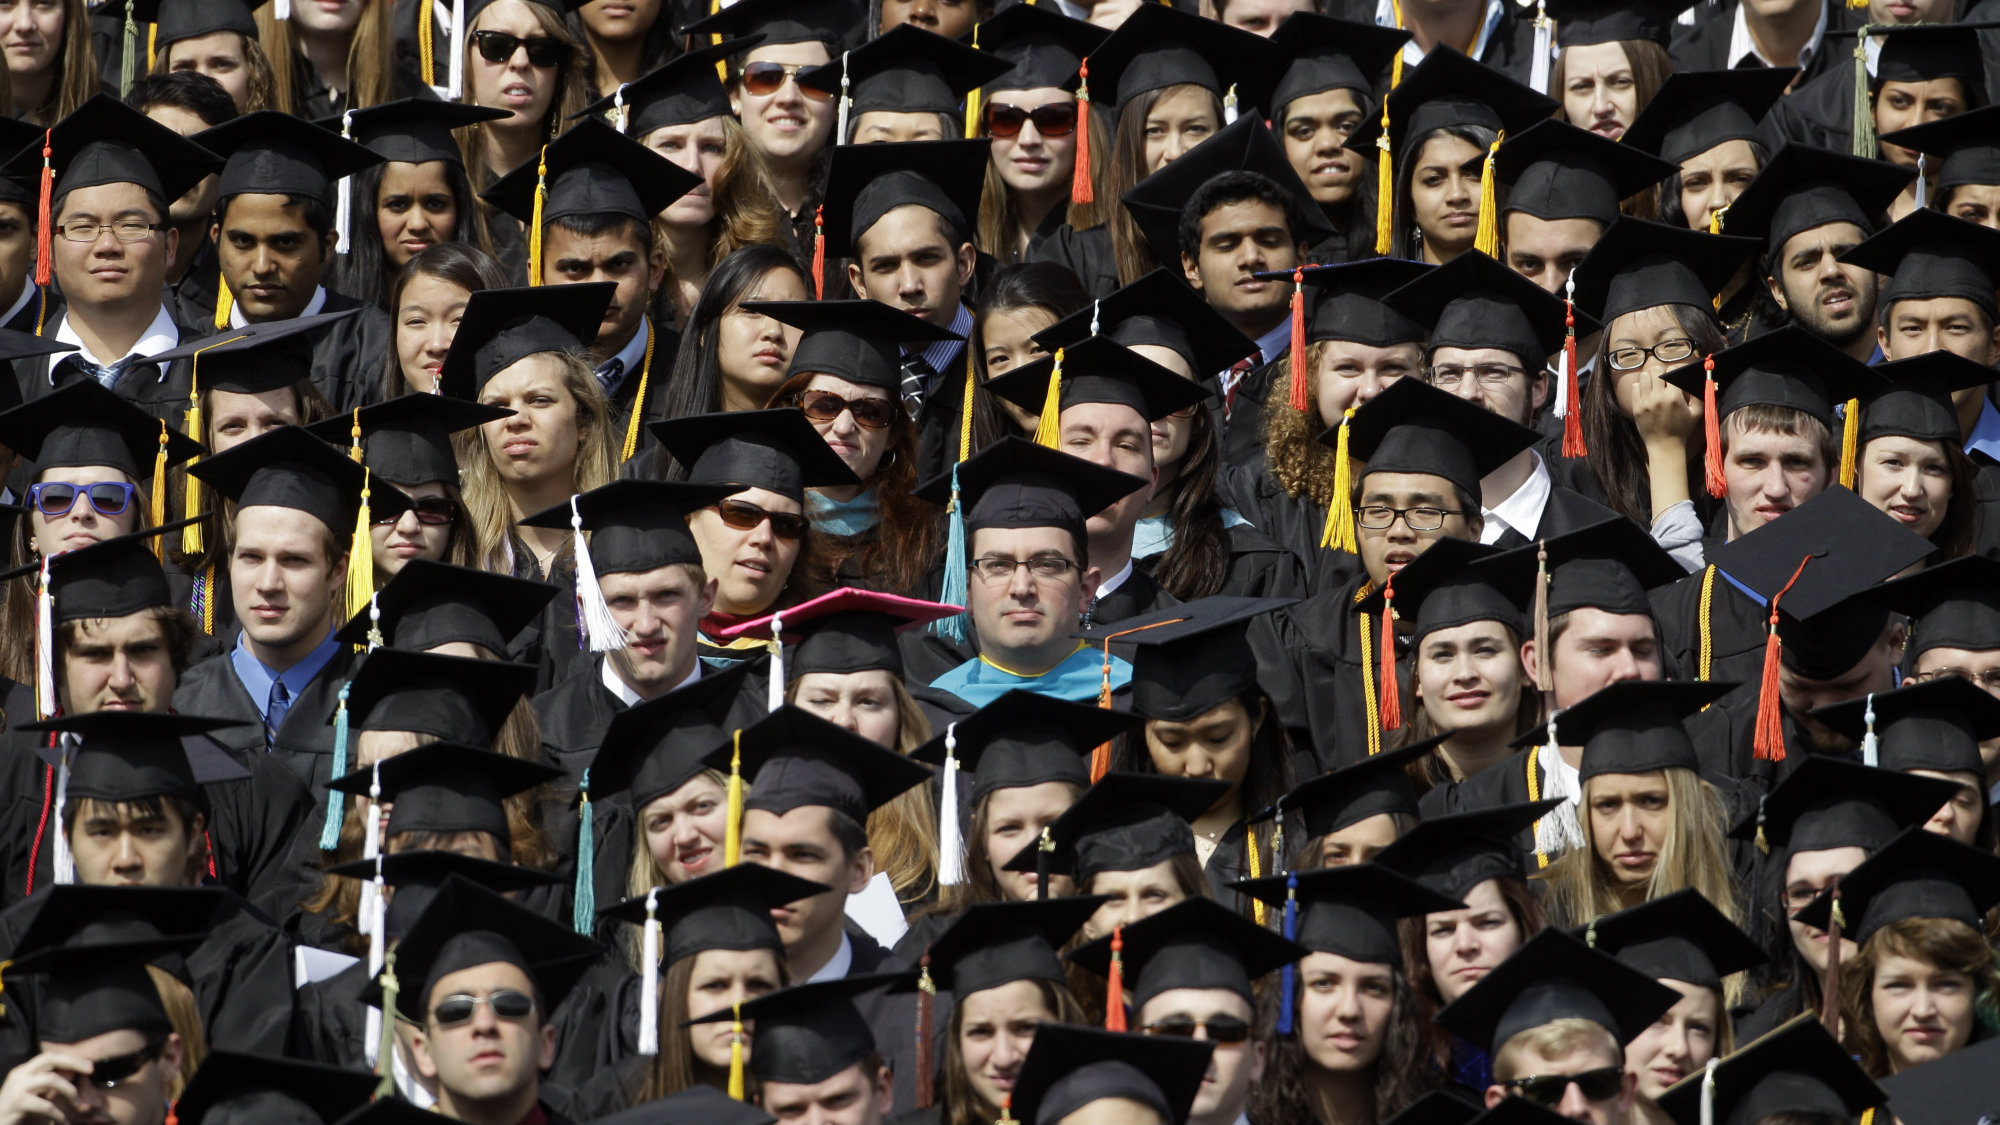 Graduates listen as Michigan Gov. Rick Snyder delivers his address at the University of Michigan commencement ceremony at Michigan Stadium.